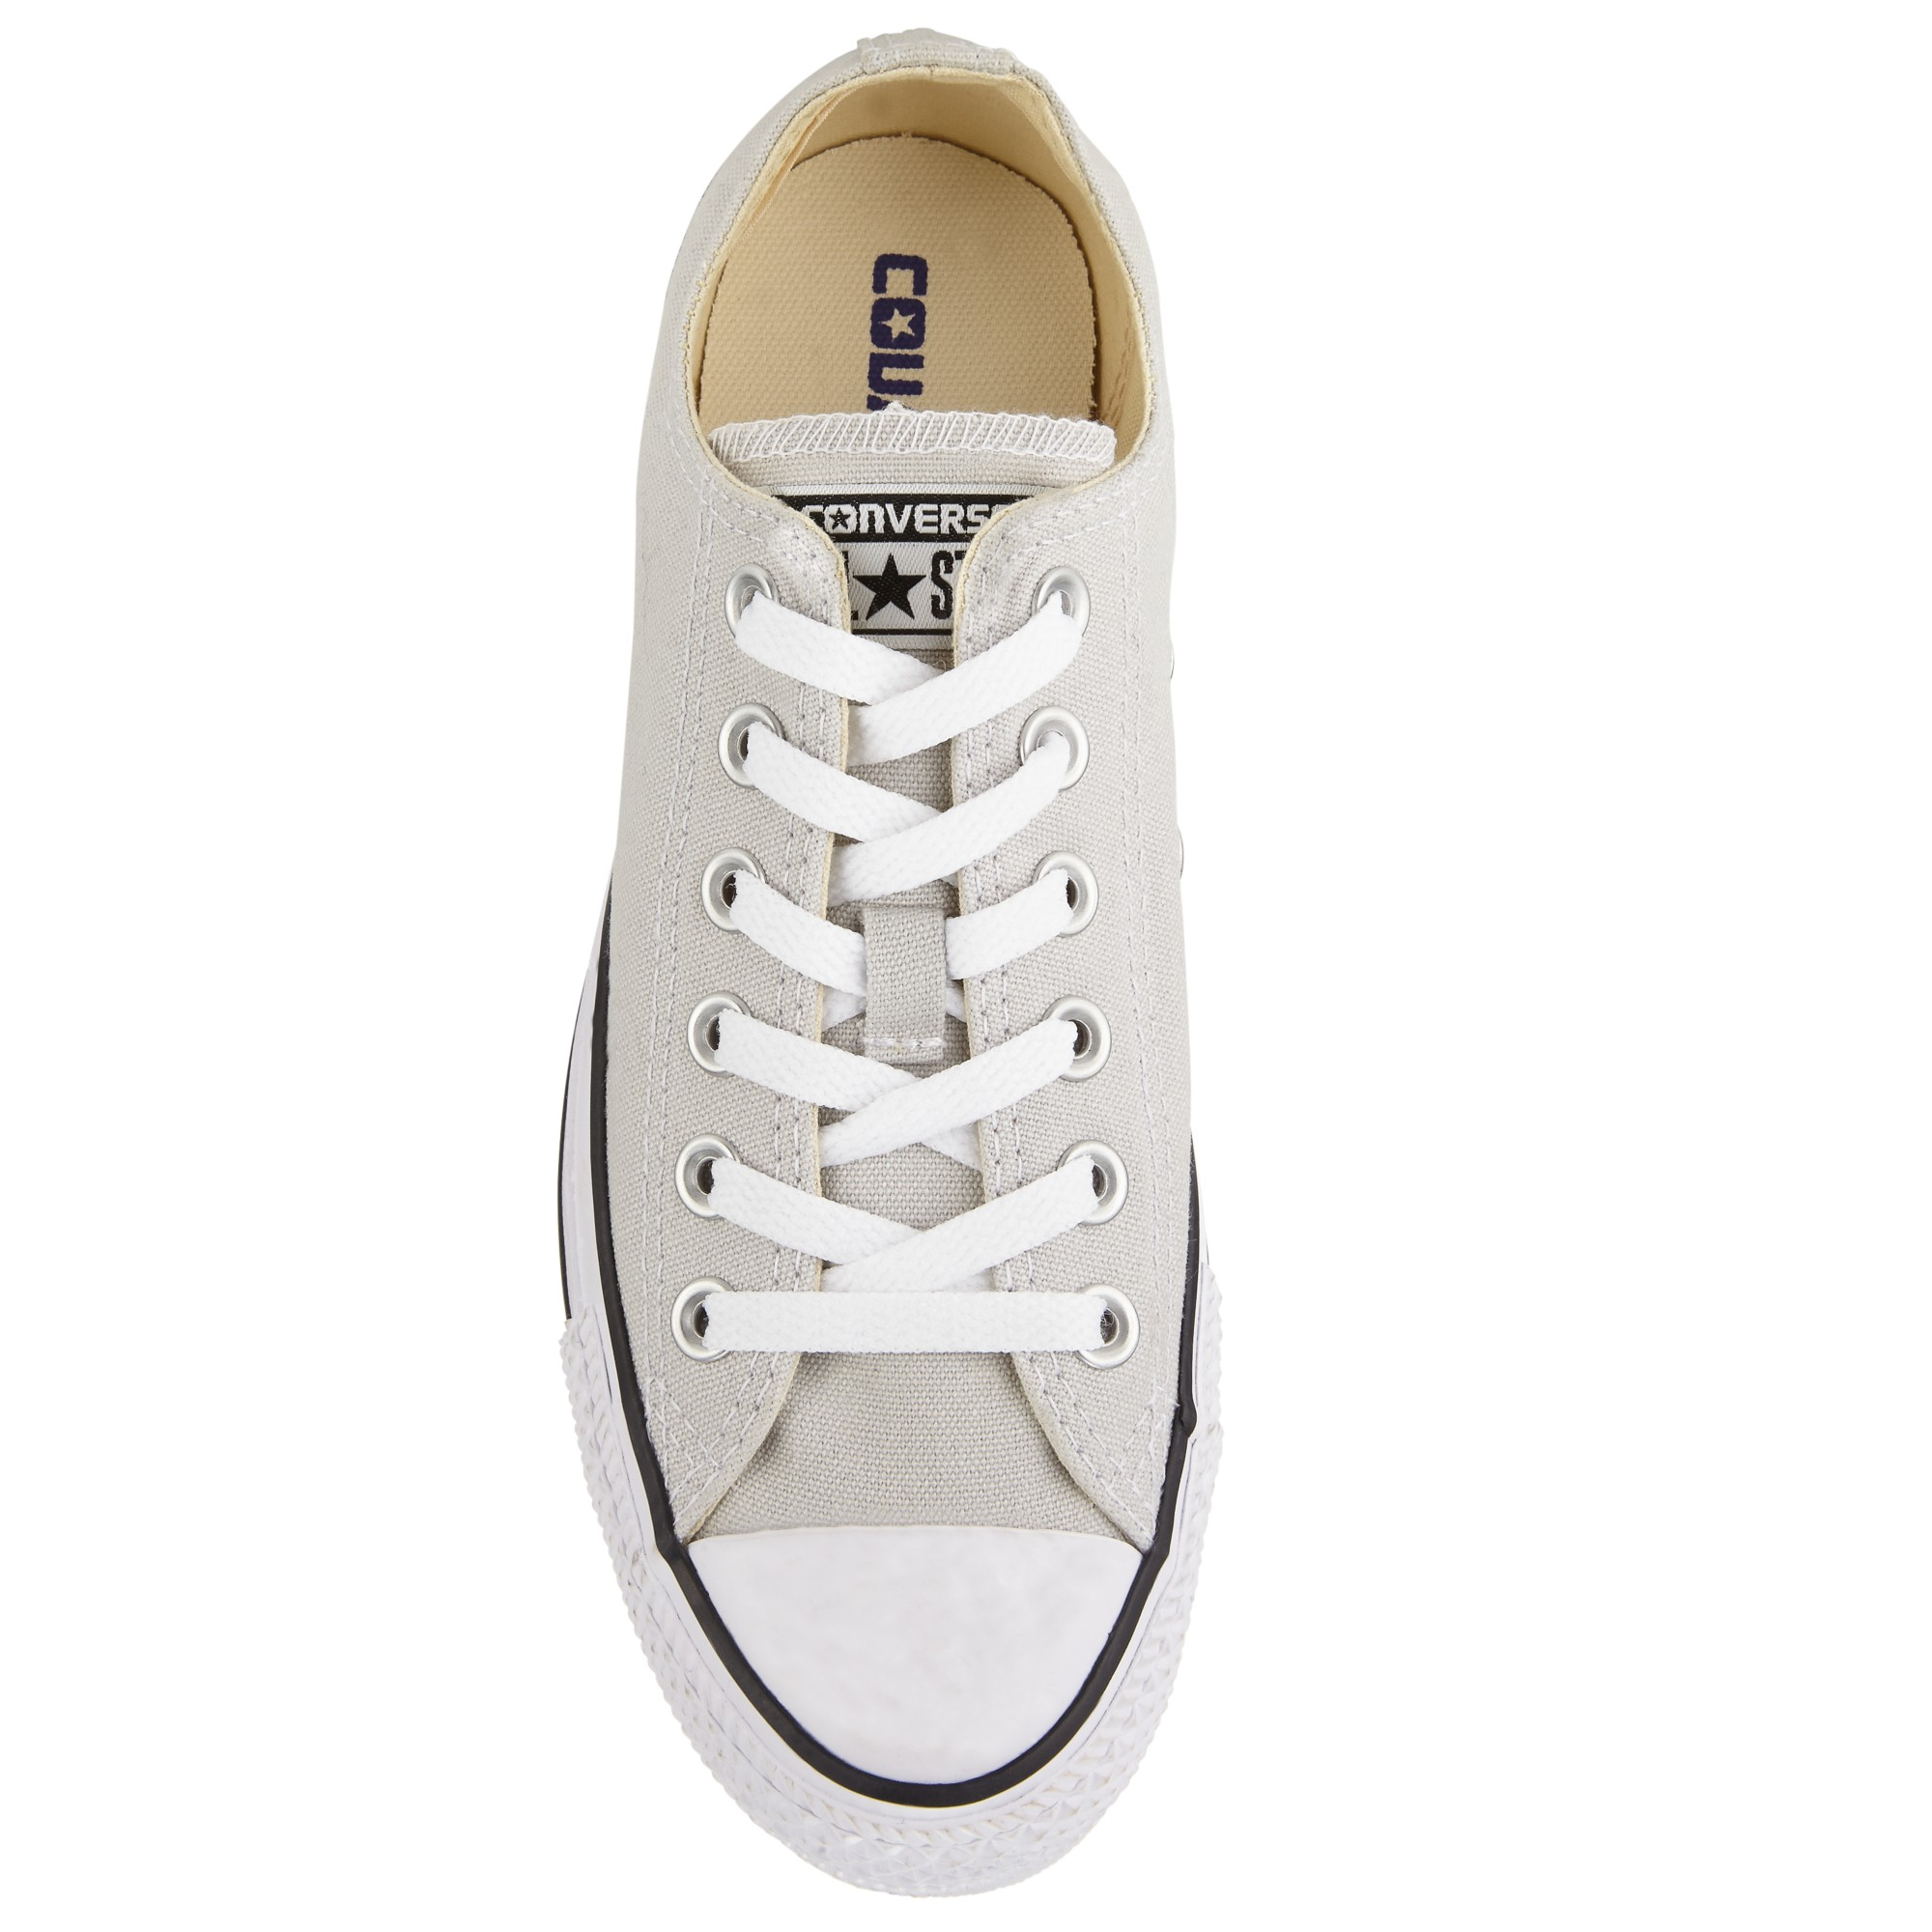 e5de0f87b179 Converse Chuck Taylor All Star Canvas Ox Low-top Trainers - Lyst